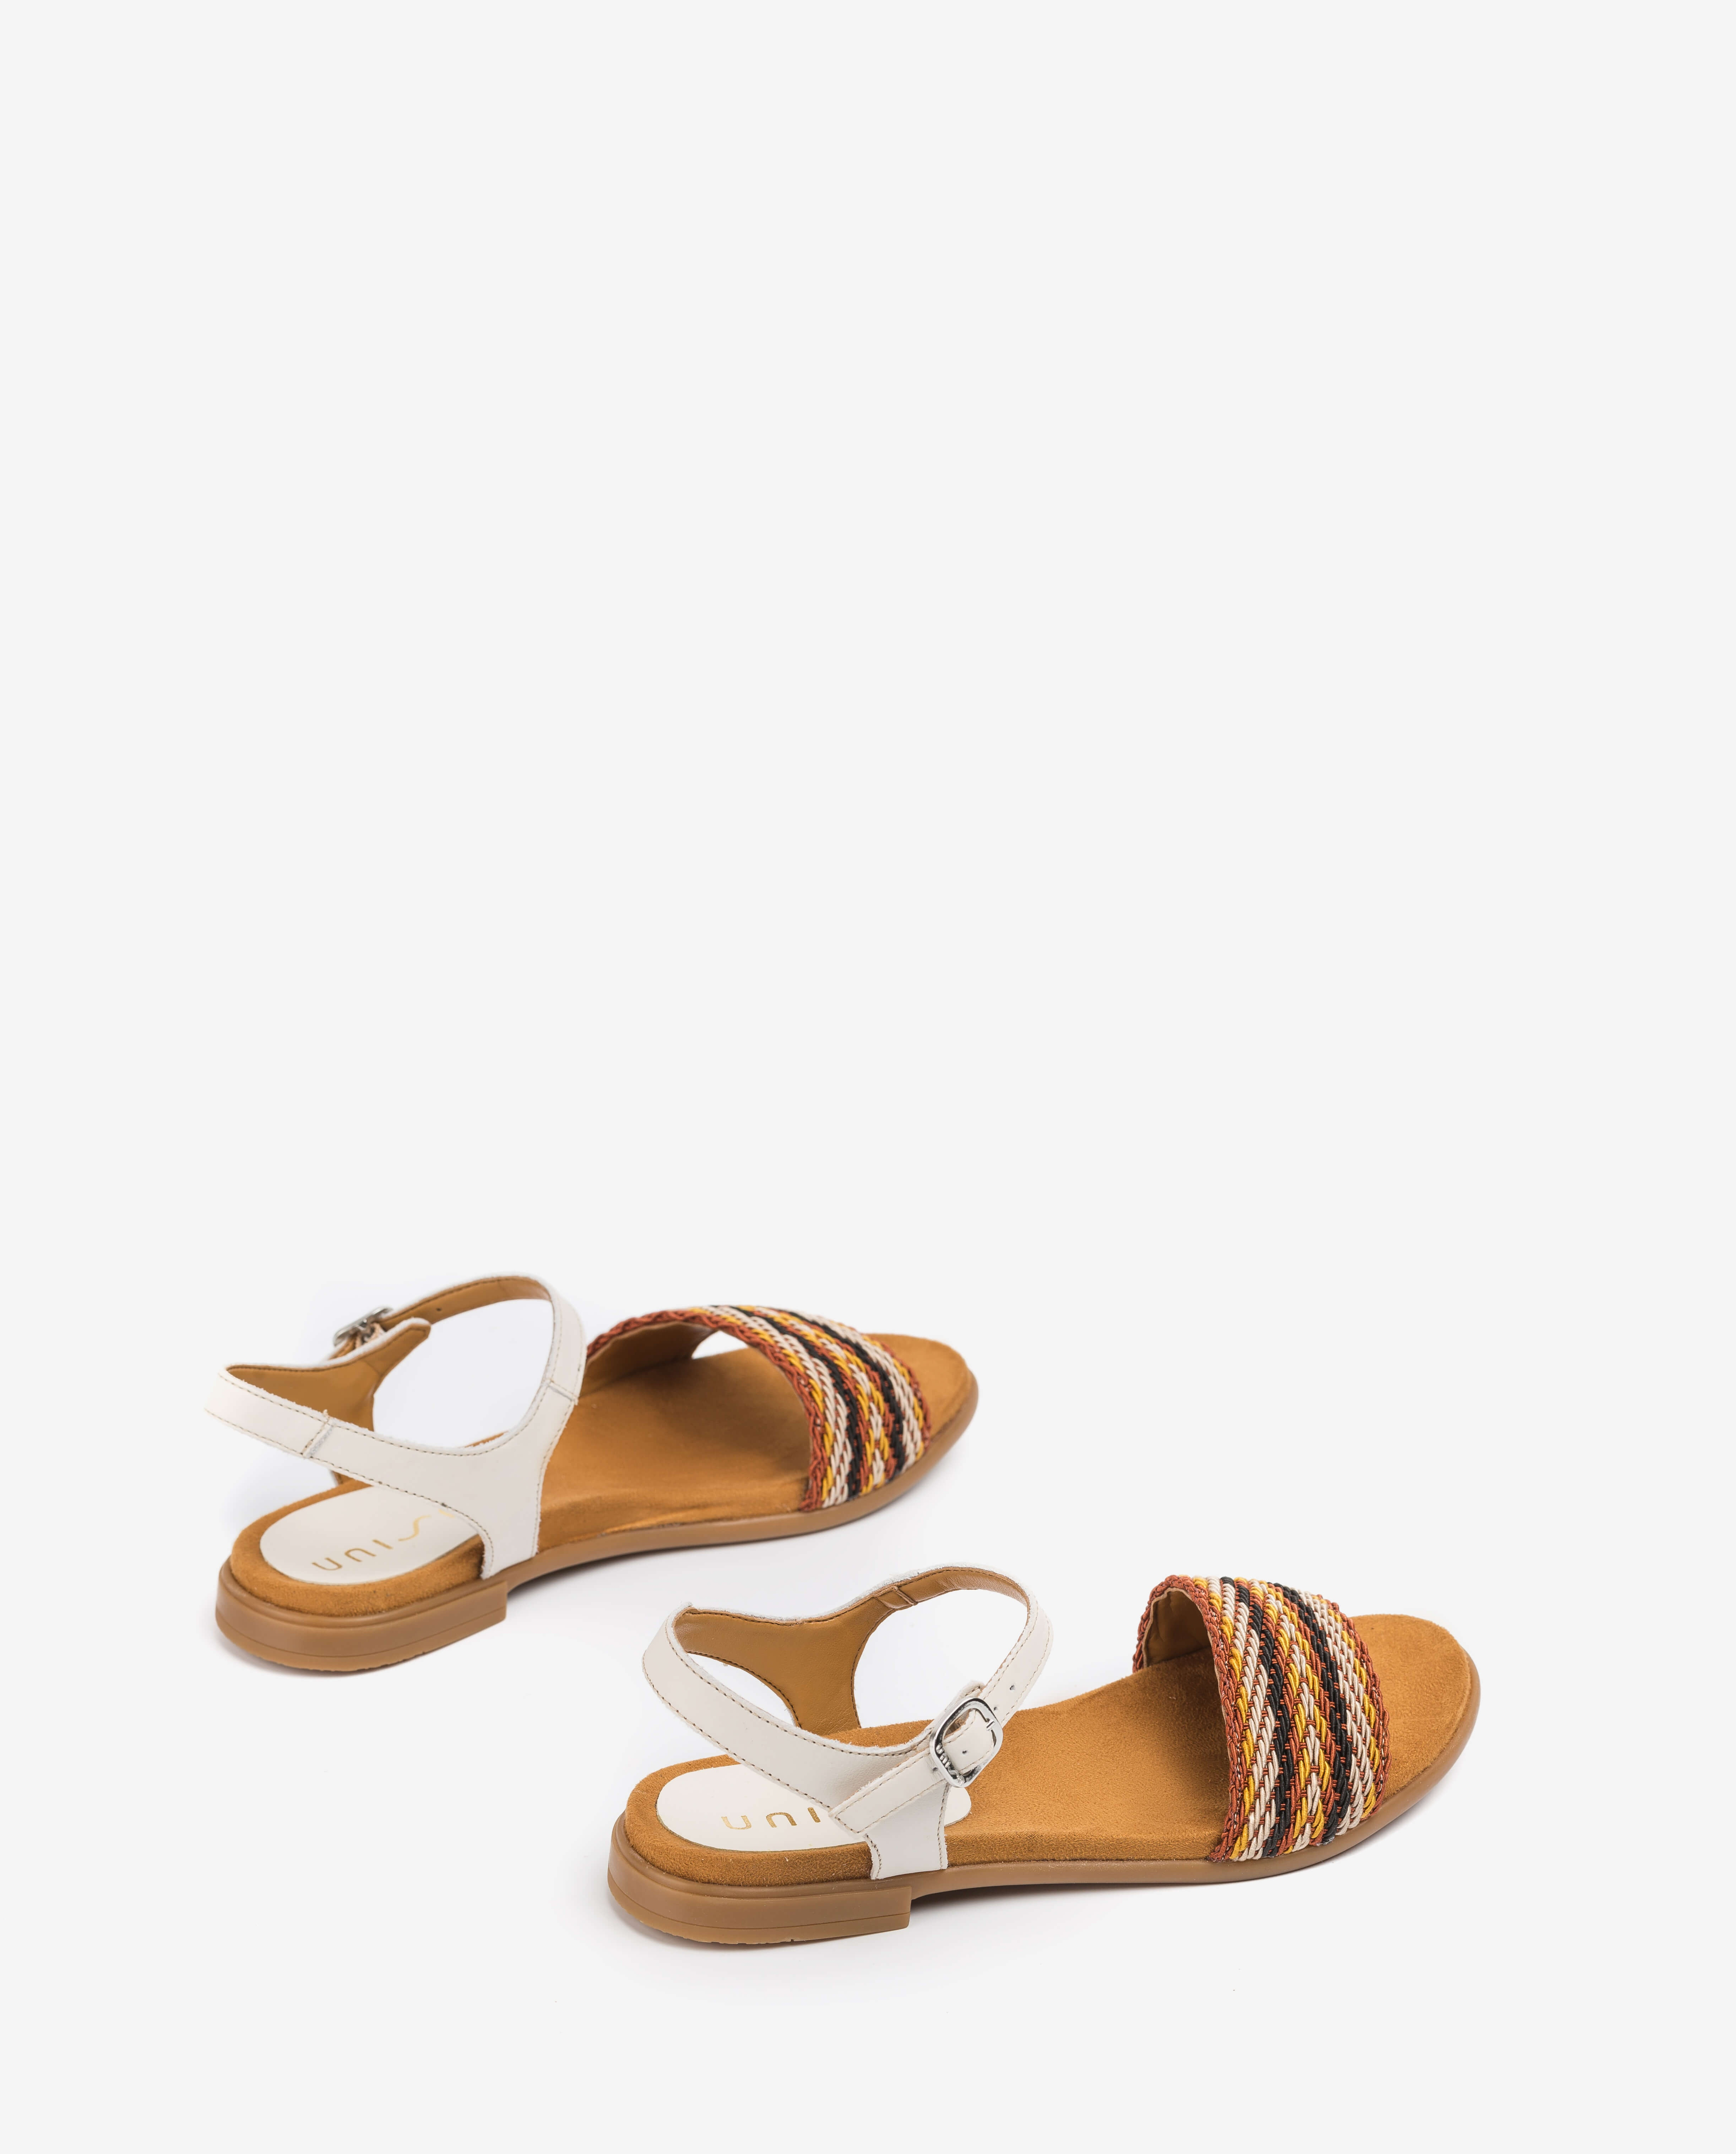 UNISA Little girl braided sandals LINTA_NF_CAN ivory 2